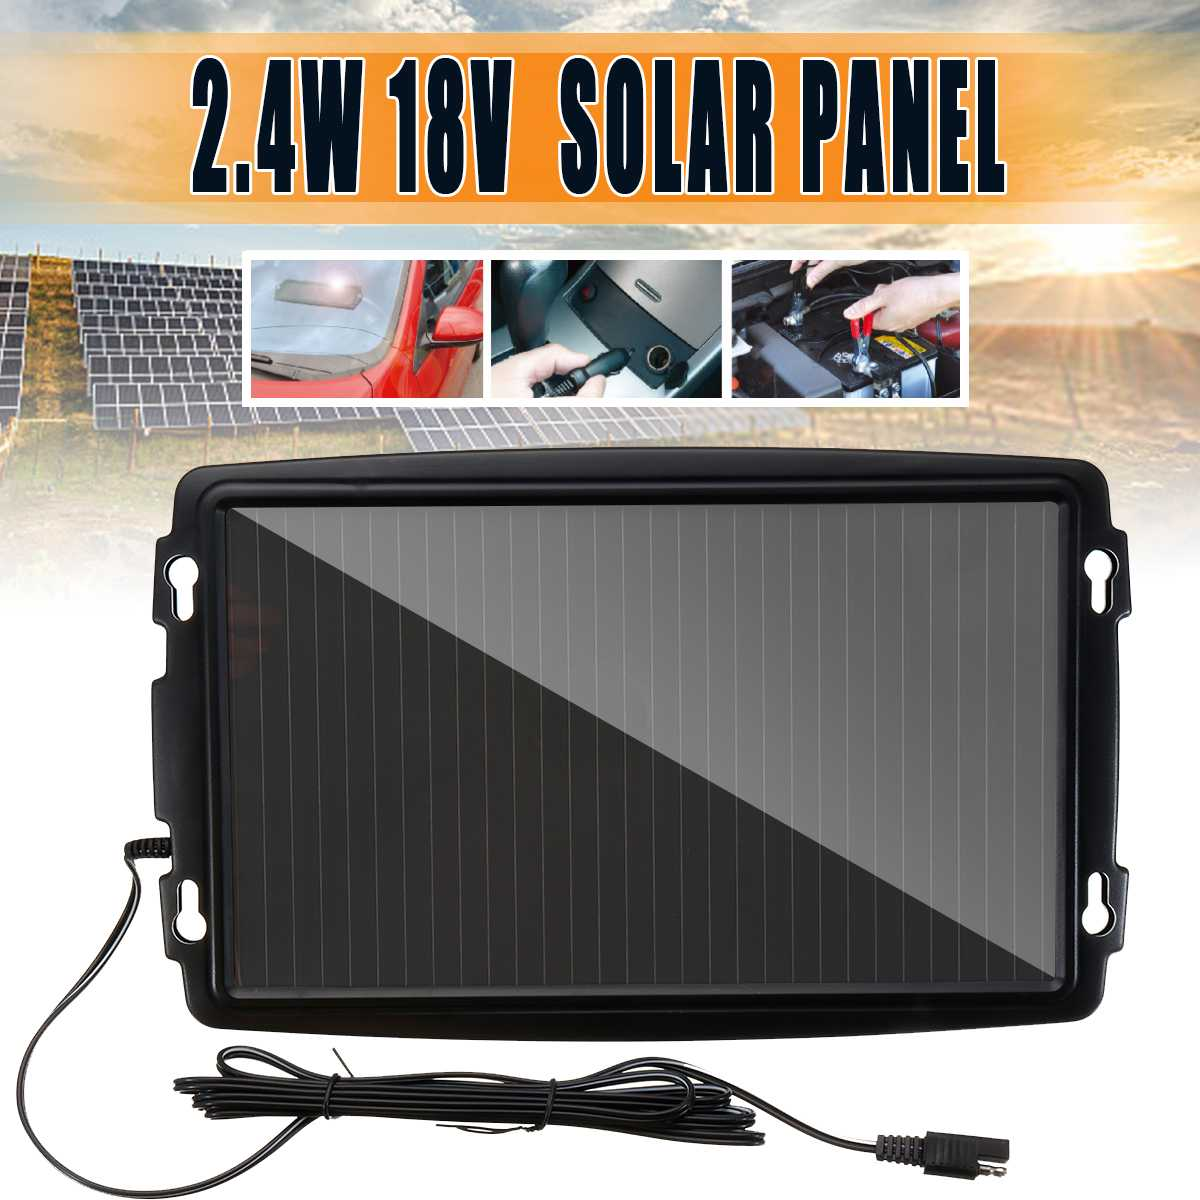 Portable Silicon Battery Charging 18V 2.4W Solar Panel Trickle Charger For Boat Car Vehicle Detachable Amorphous Outdoor PowerPortable Silicon Battery Charging 18V 2.4W Solar Panel Trickle Charger For Boat Car Vehicle Detachable Amorphous Outdoor Power